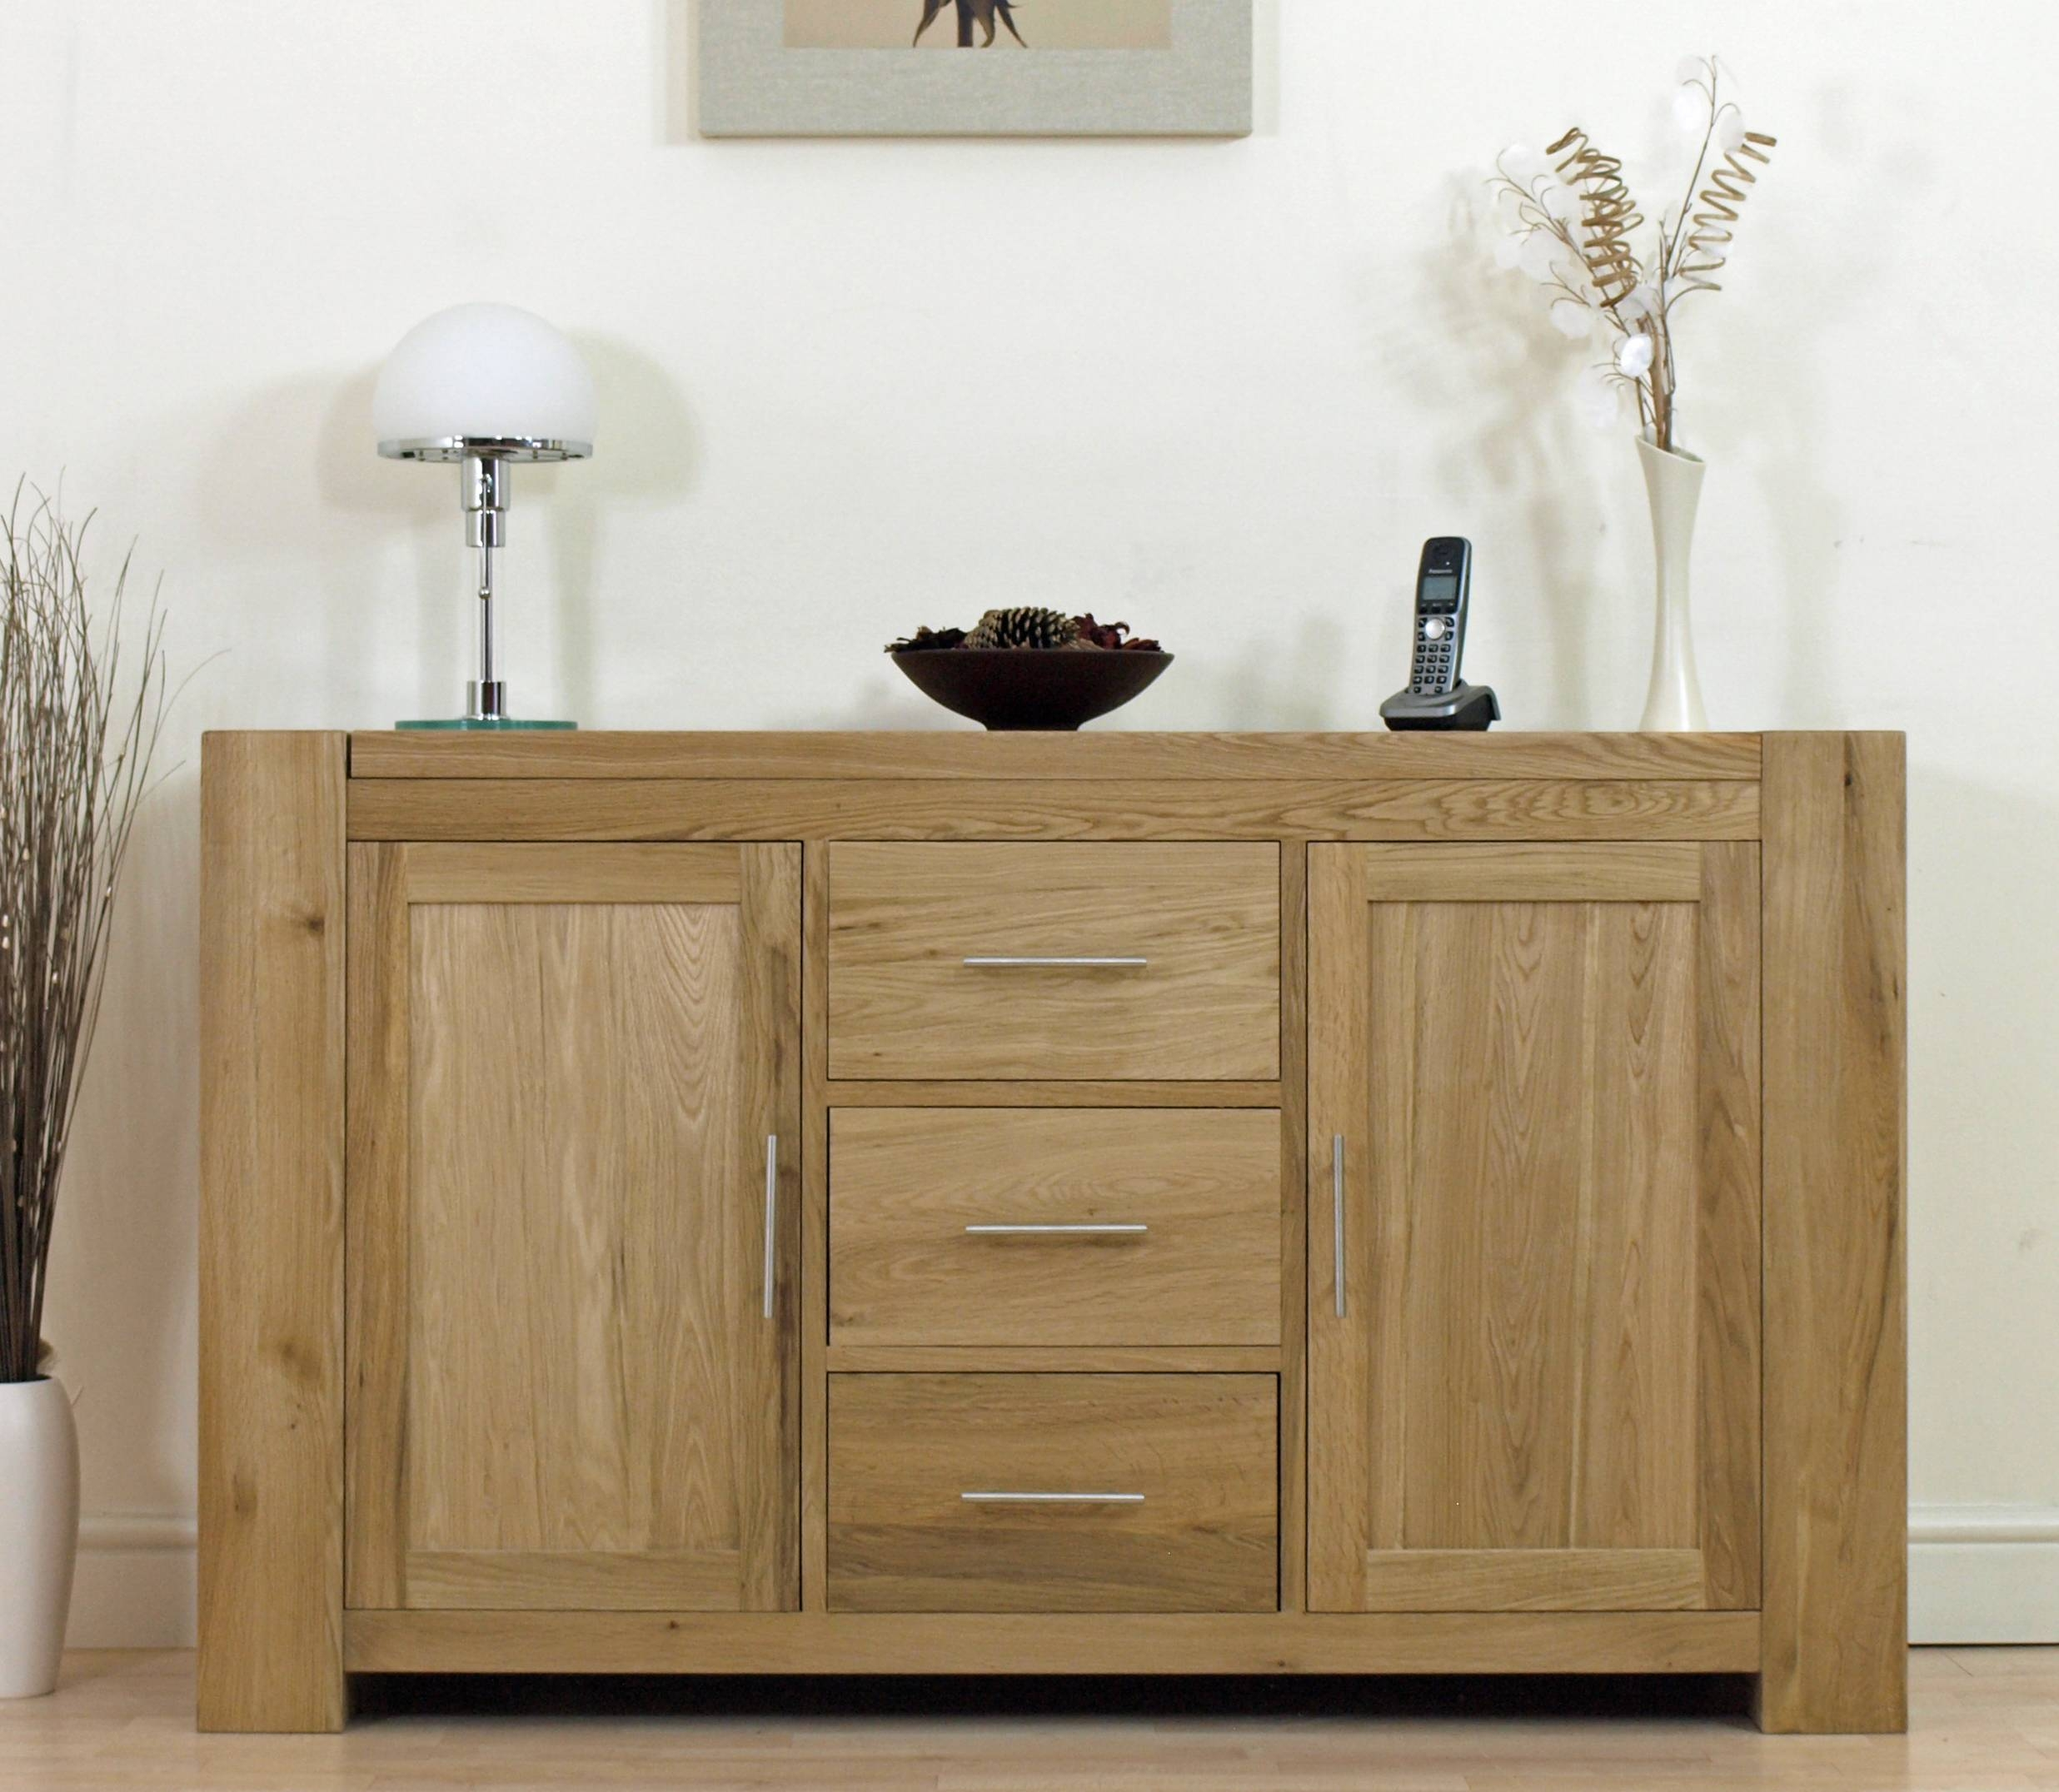 Solid Oak Sideboard Is Your First Choice Living Room Furniture – Hgnv Intended For Solid Oak Sideboards (View 13 of 15)